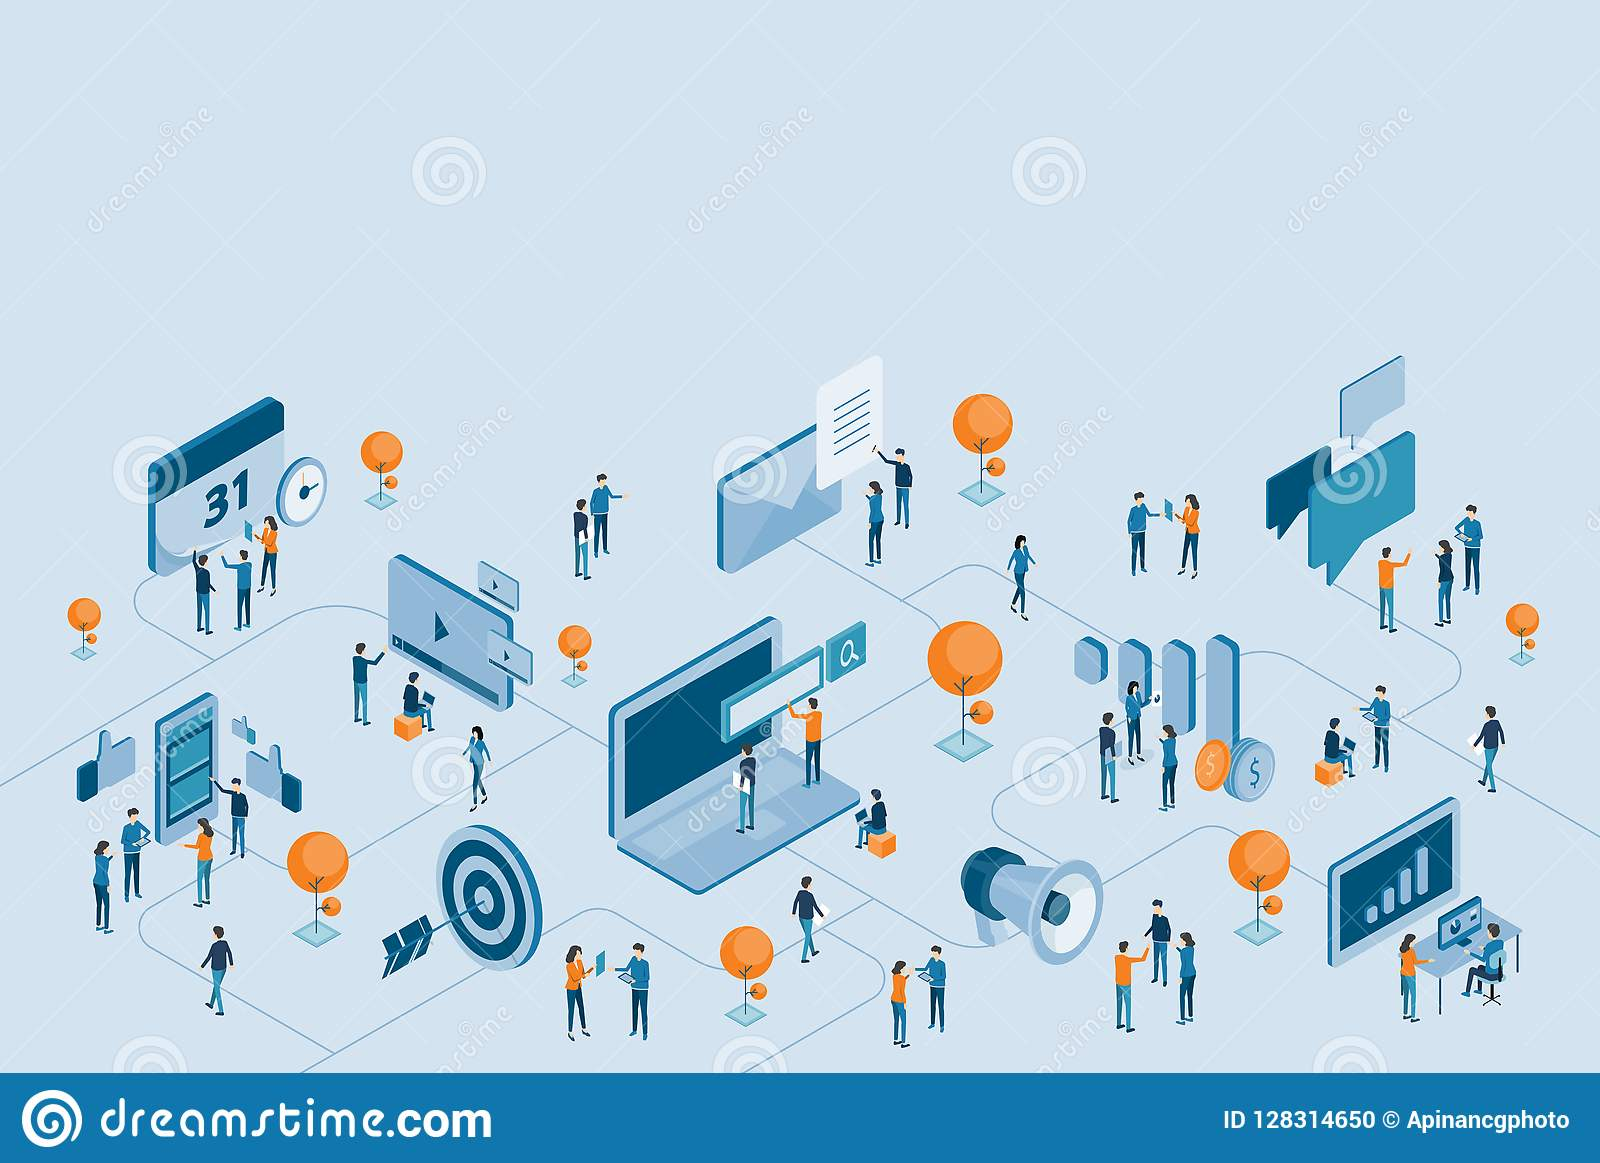 Isometric design for business digital marketing online connection